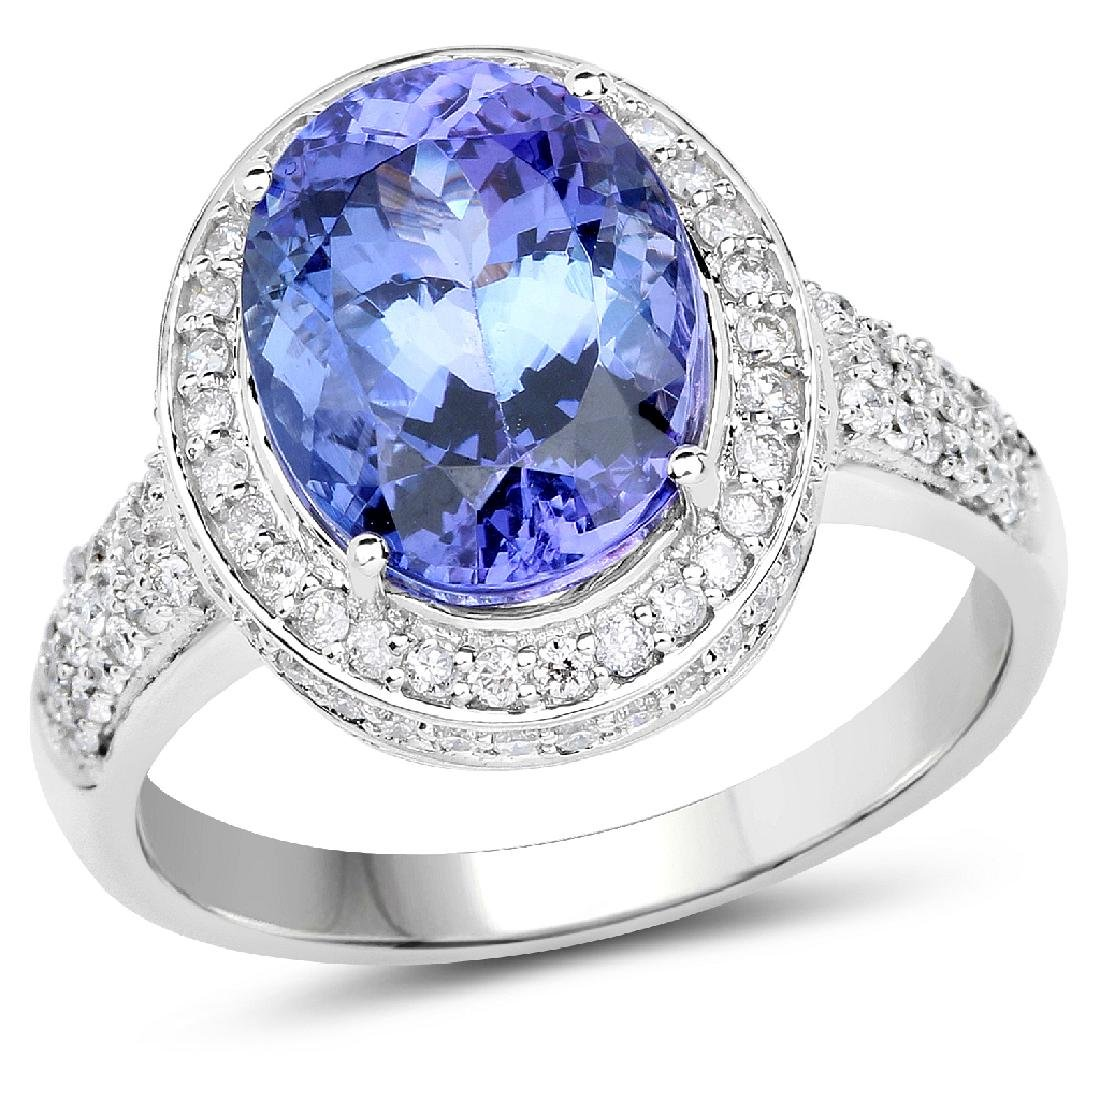 *14 kt. White Gold, 4.62CT Oval Cut Tanzanite And